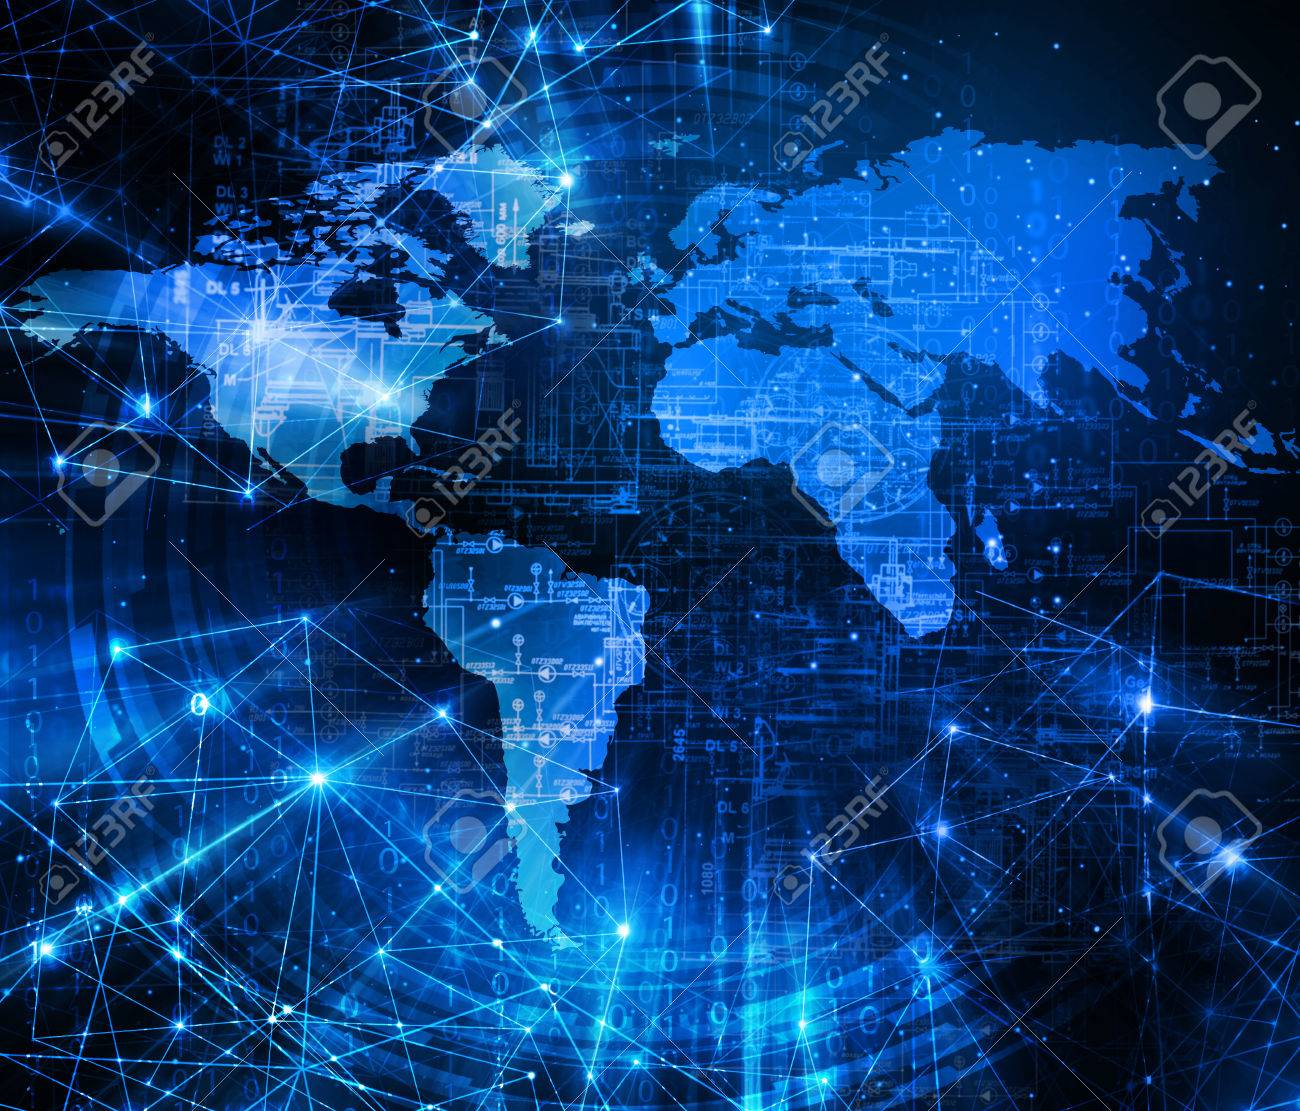 World map on a technological background glowing lines symbols stock photo world map on a technological background glowing lines symbols of the internet radio television mobile and satellite communications gumiabroncs Gallery